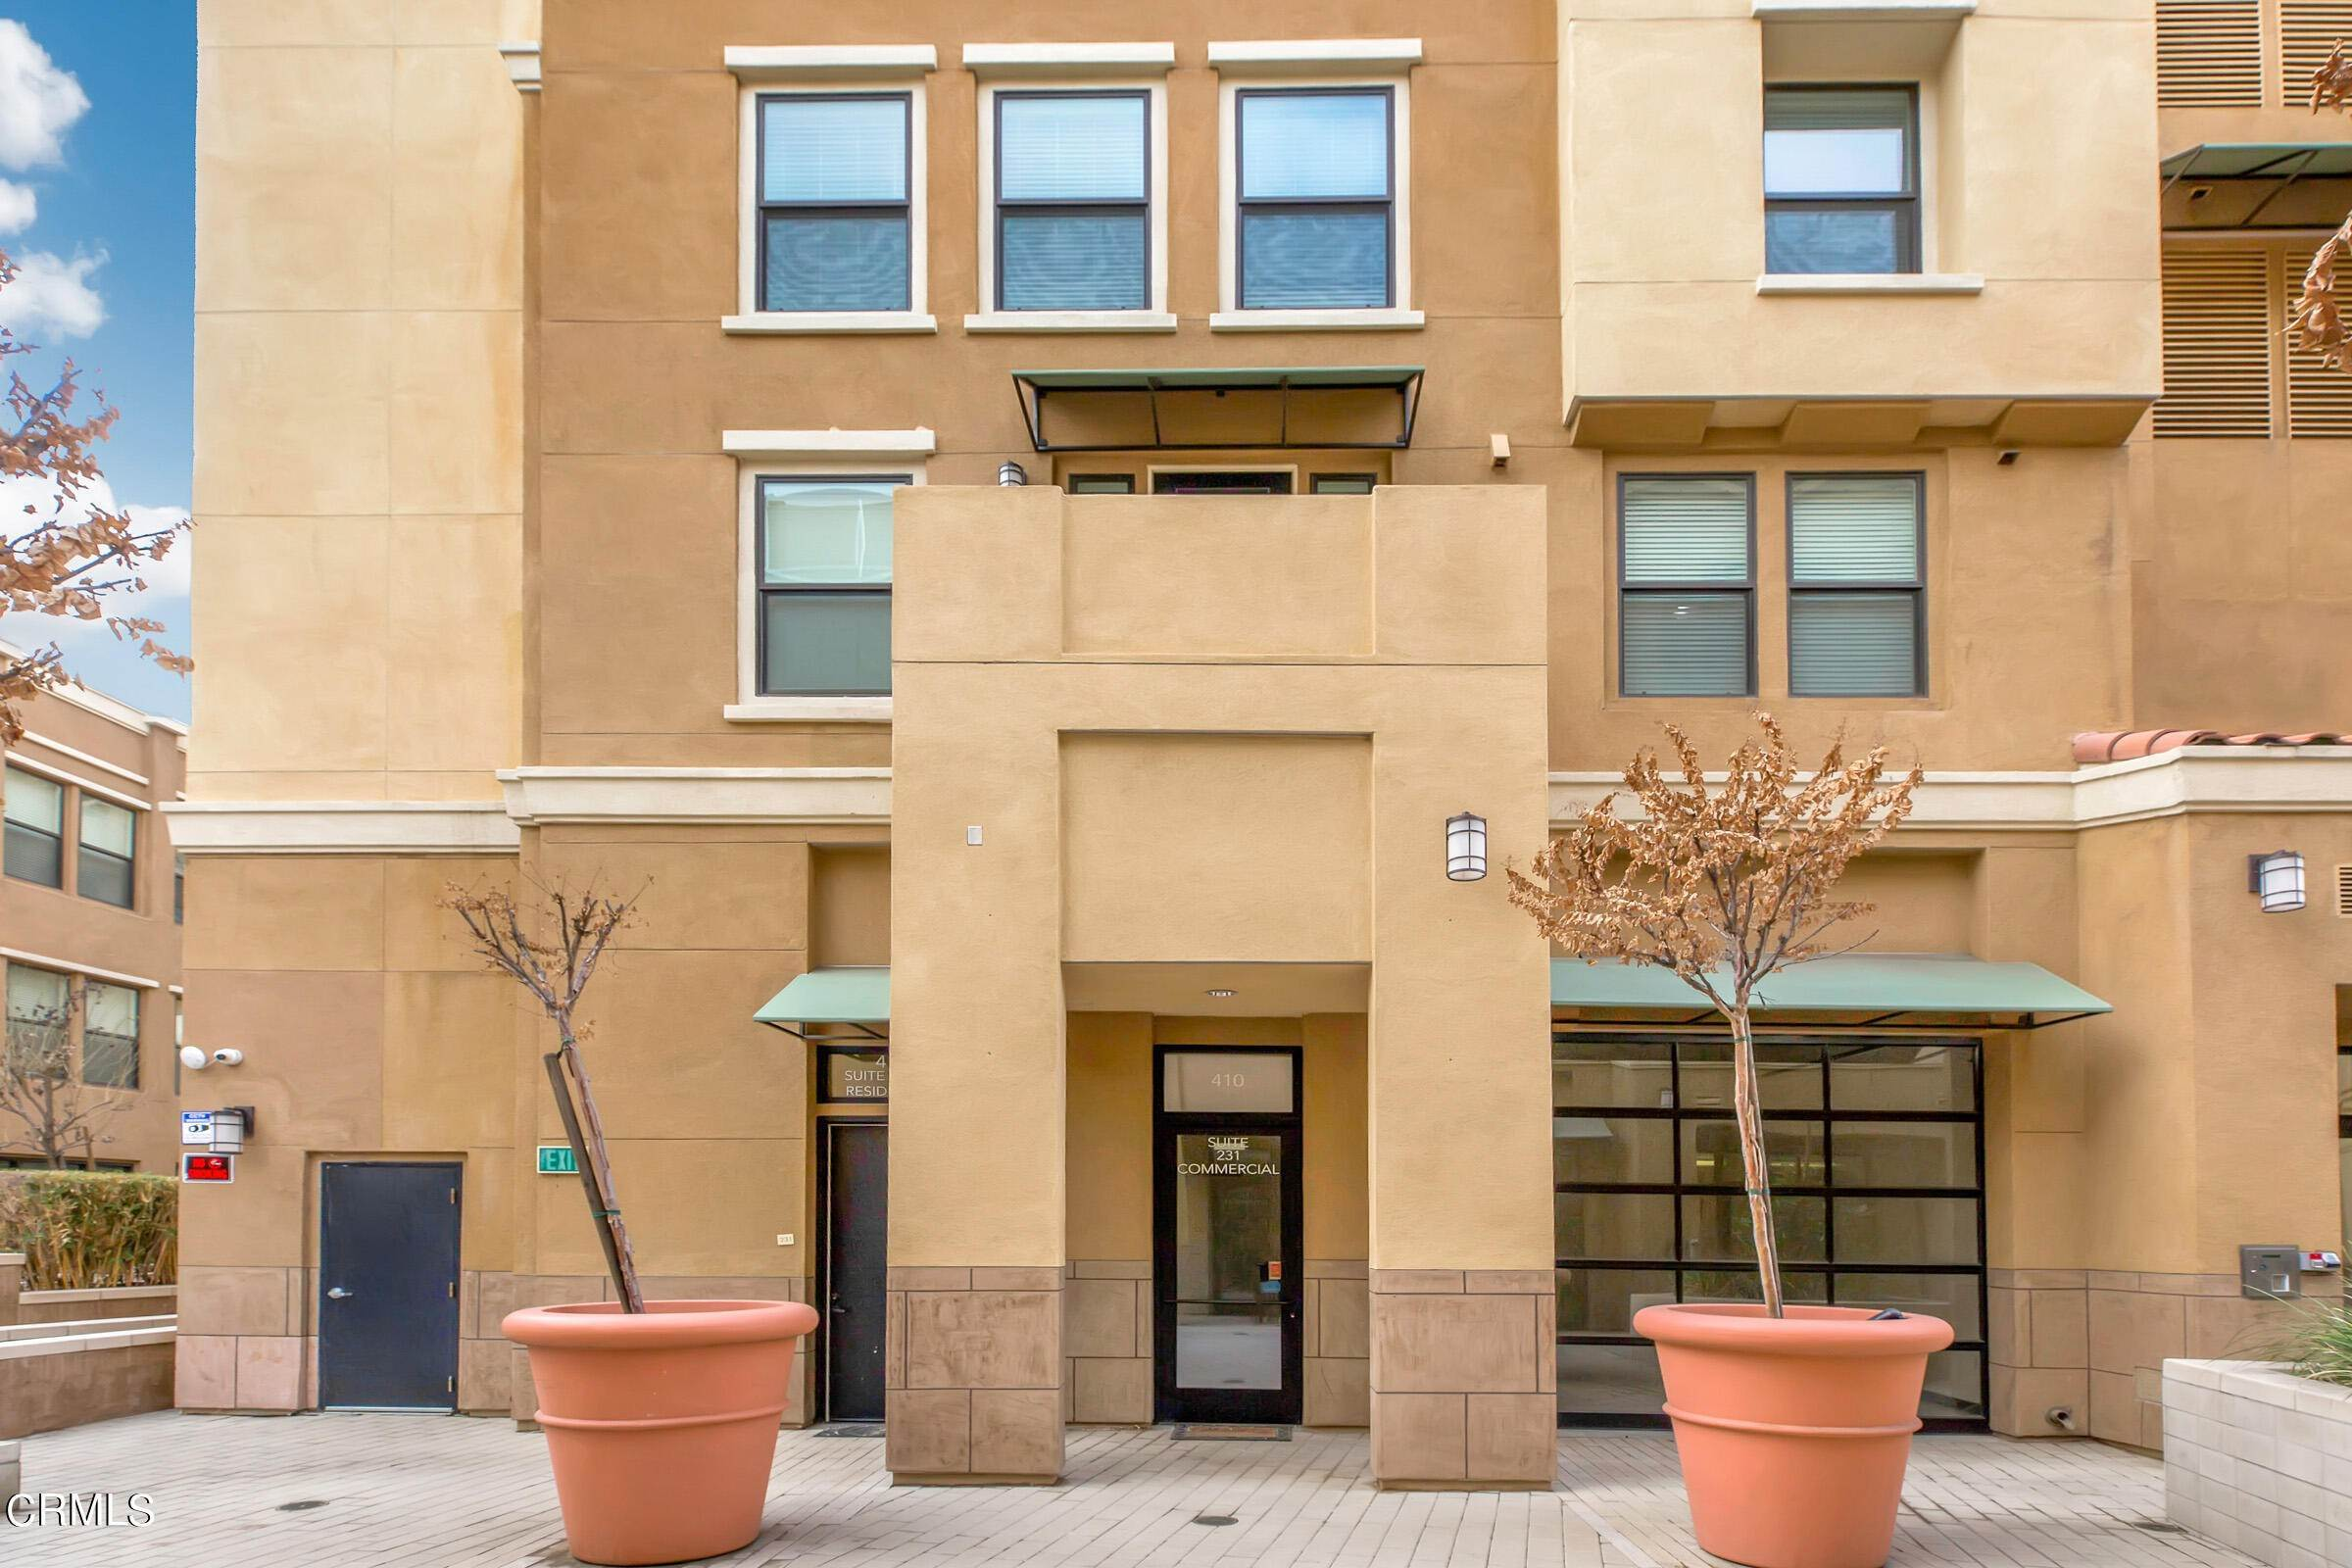 3. Condominiums for Sale at 410 West Main St #231 410 West Main Street Alhambra, California 91801 United States